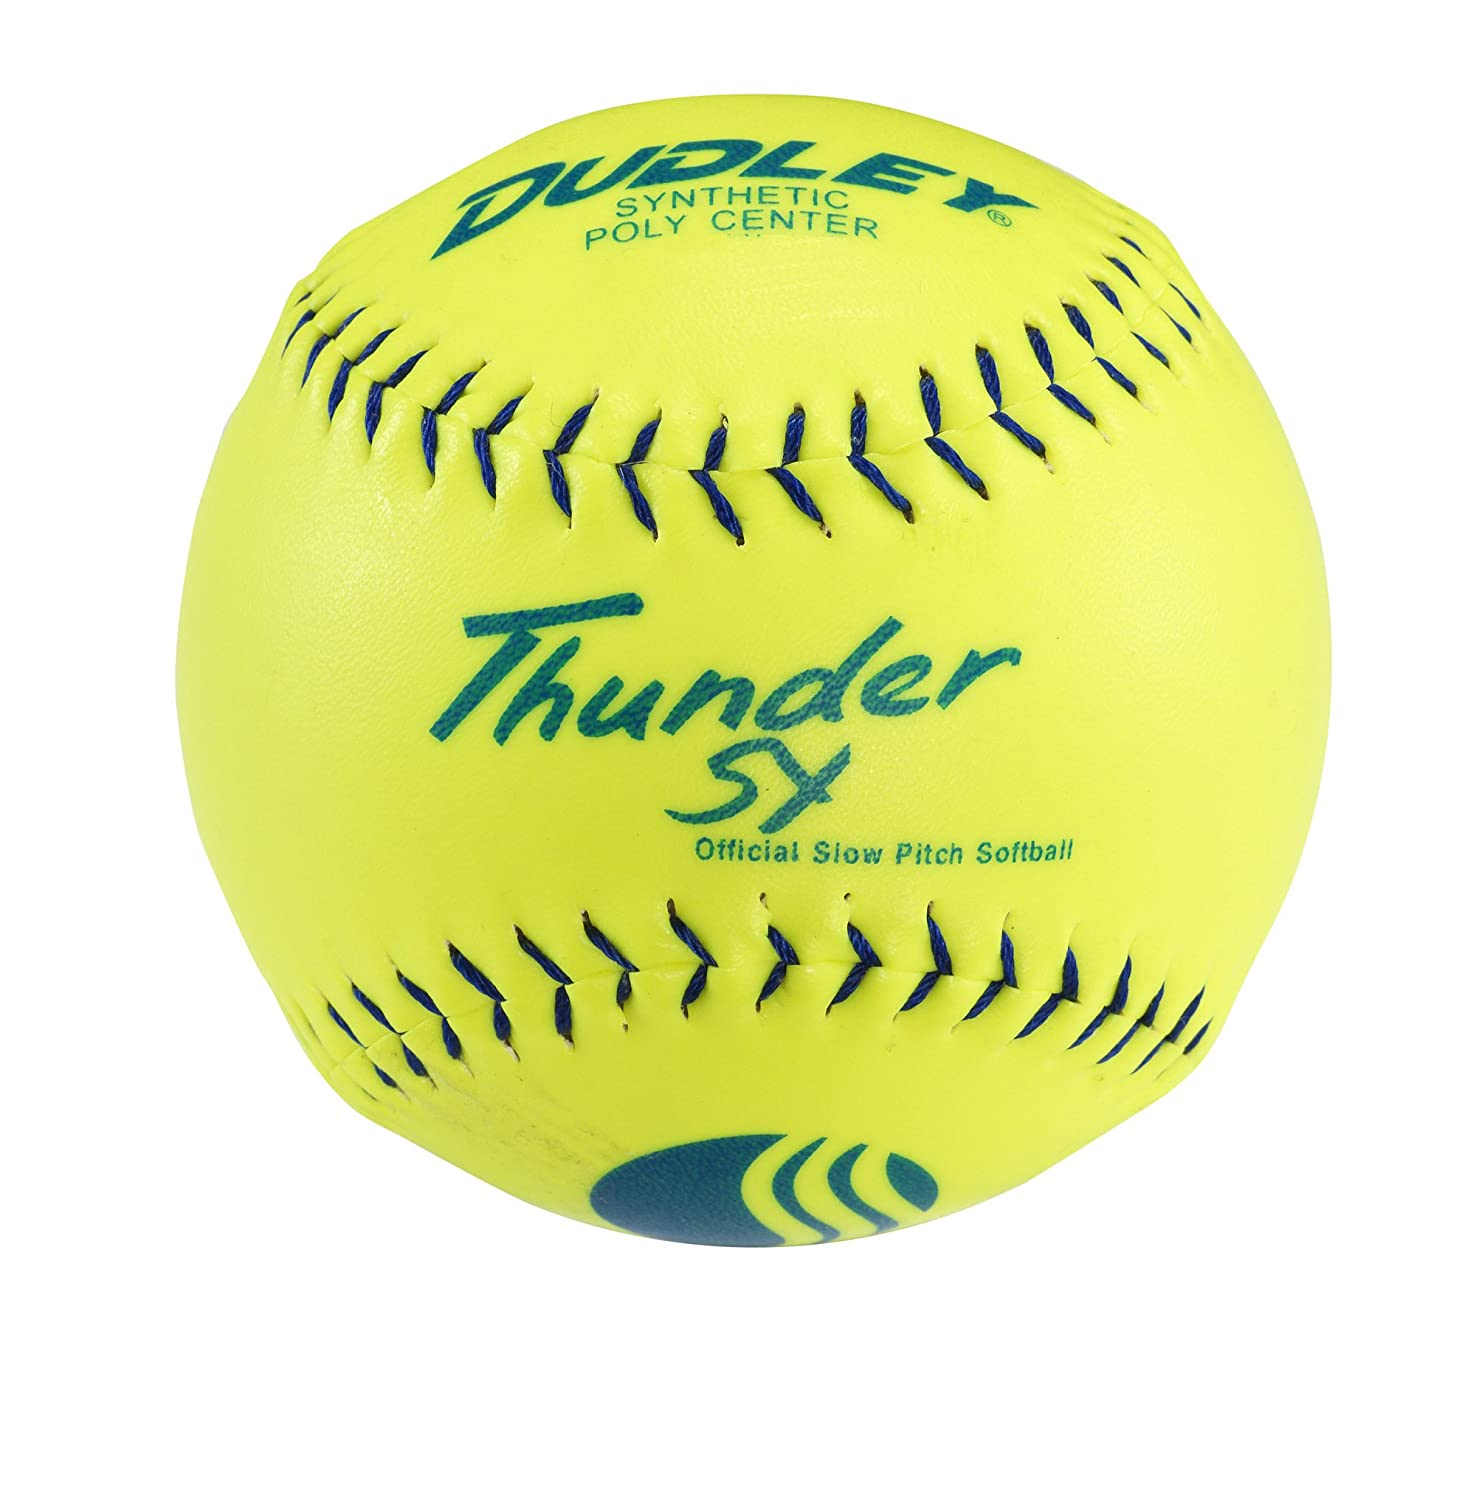 amazon com dudley blue stitch usssa thunder sy synthetic yellow